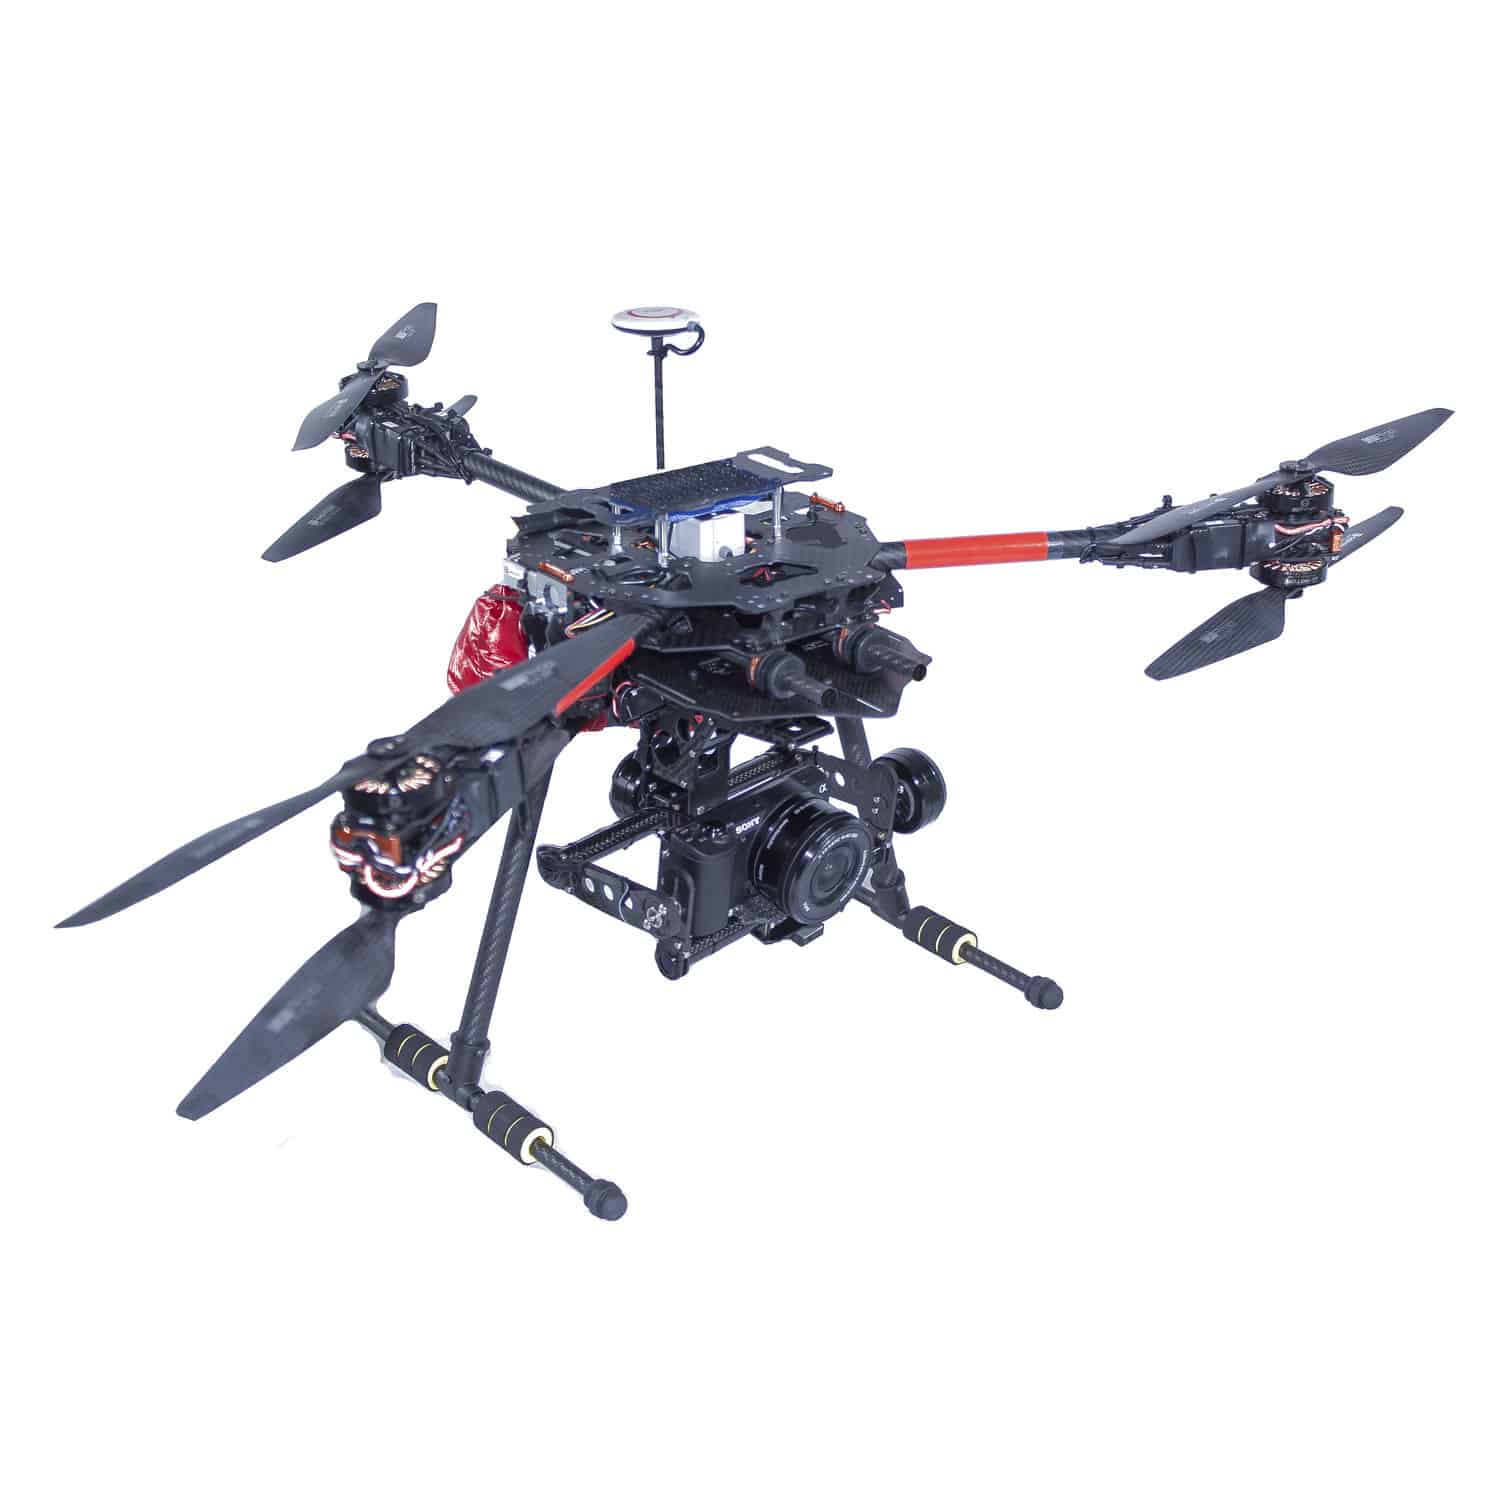 Hexarotor UAV Aerial Photography For Photogrammetry With Thermal Camera